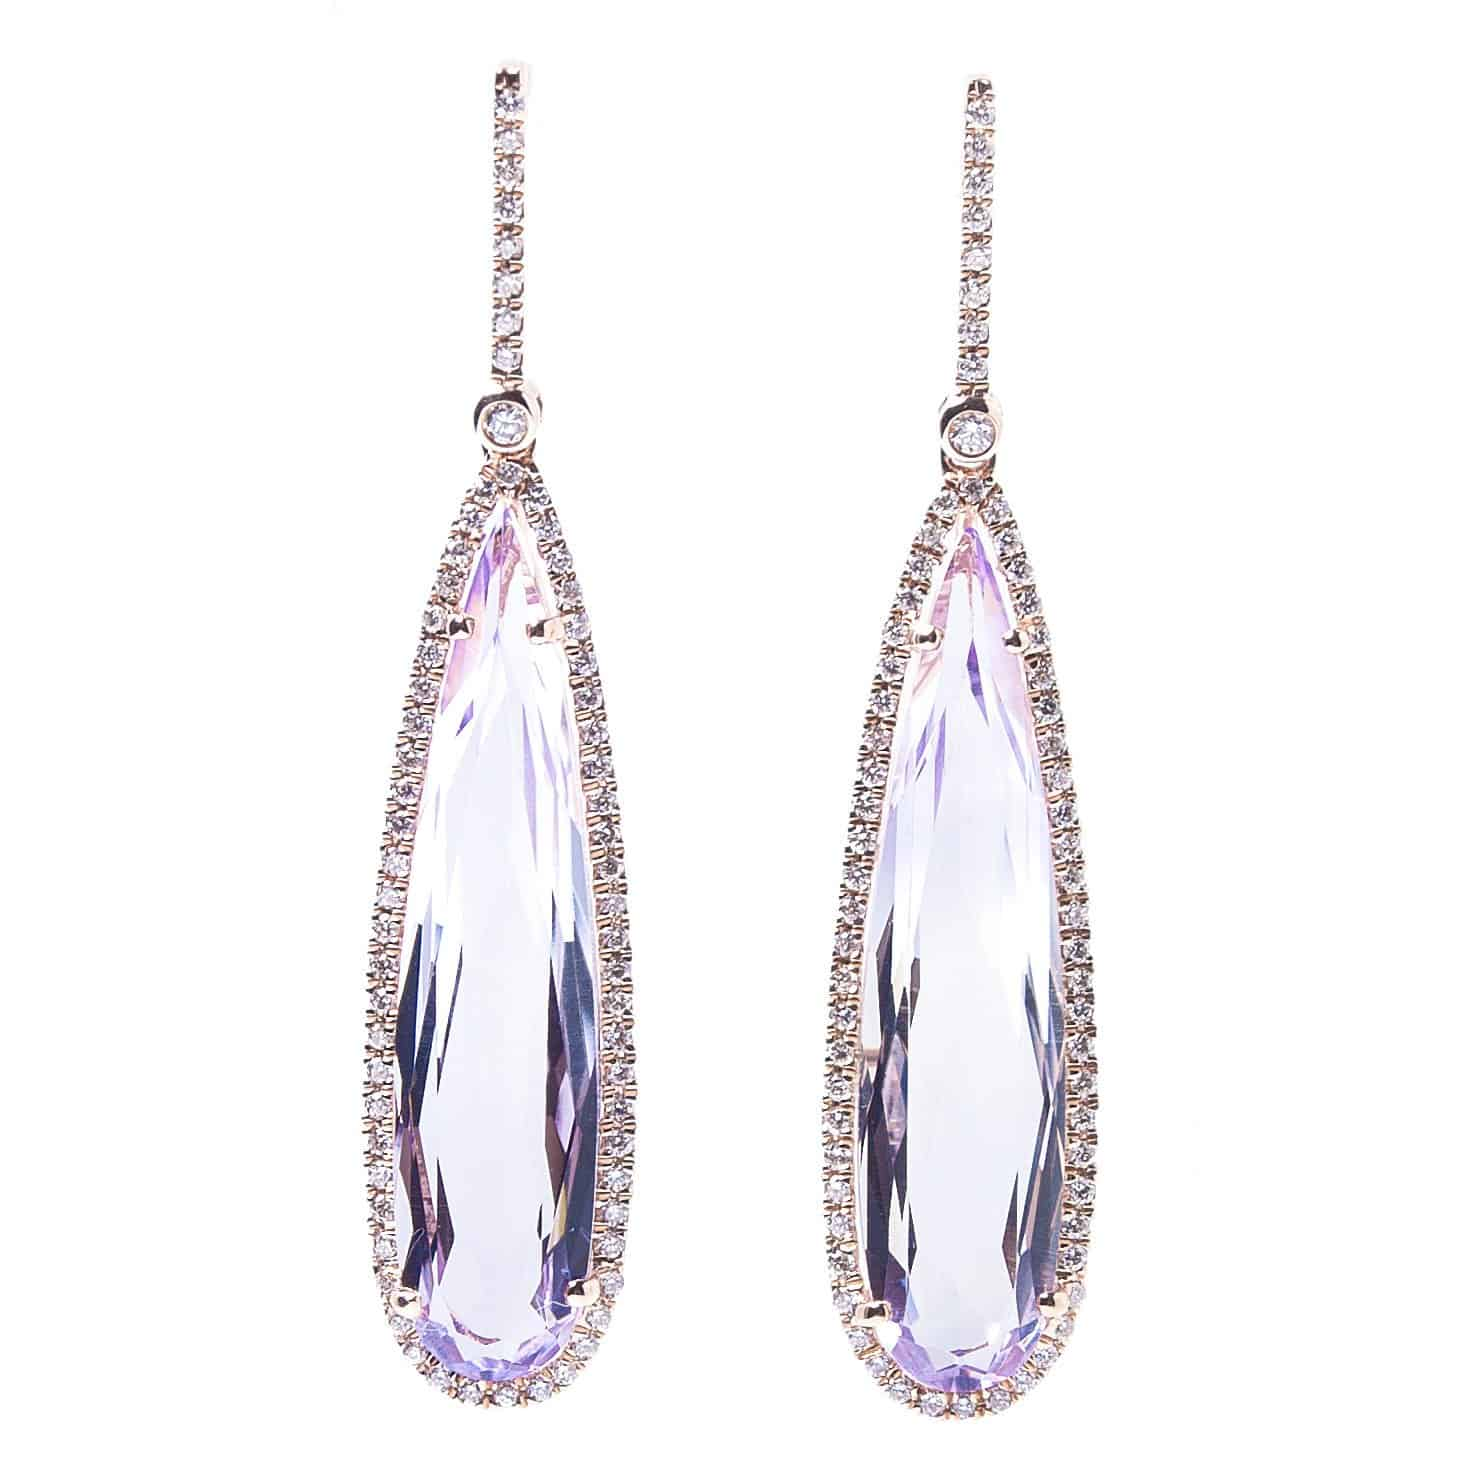 ELONGATED PEAR EARRING WITH DIAMOND HALO